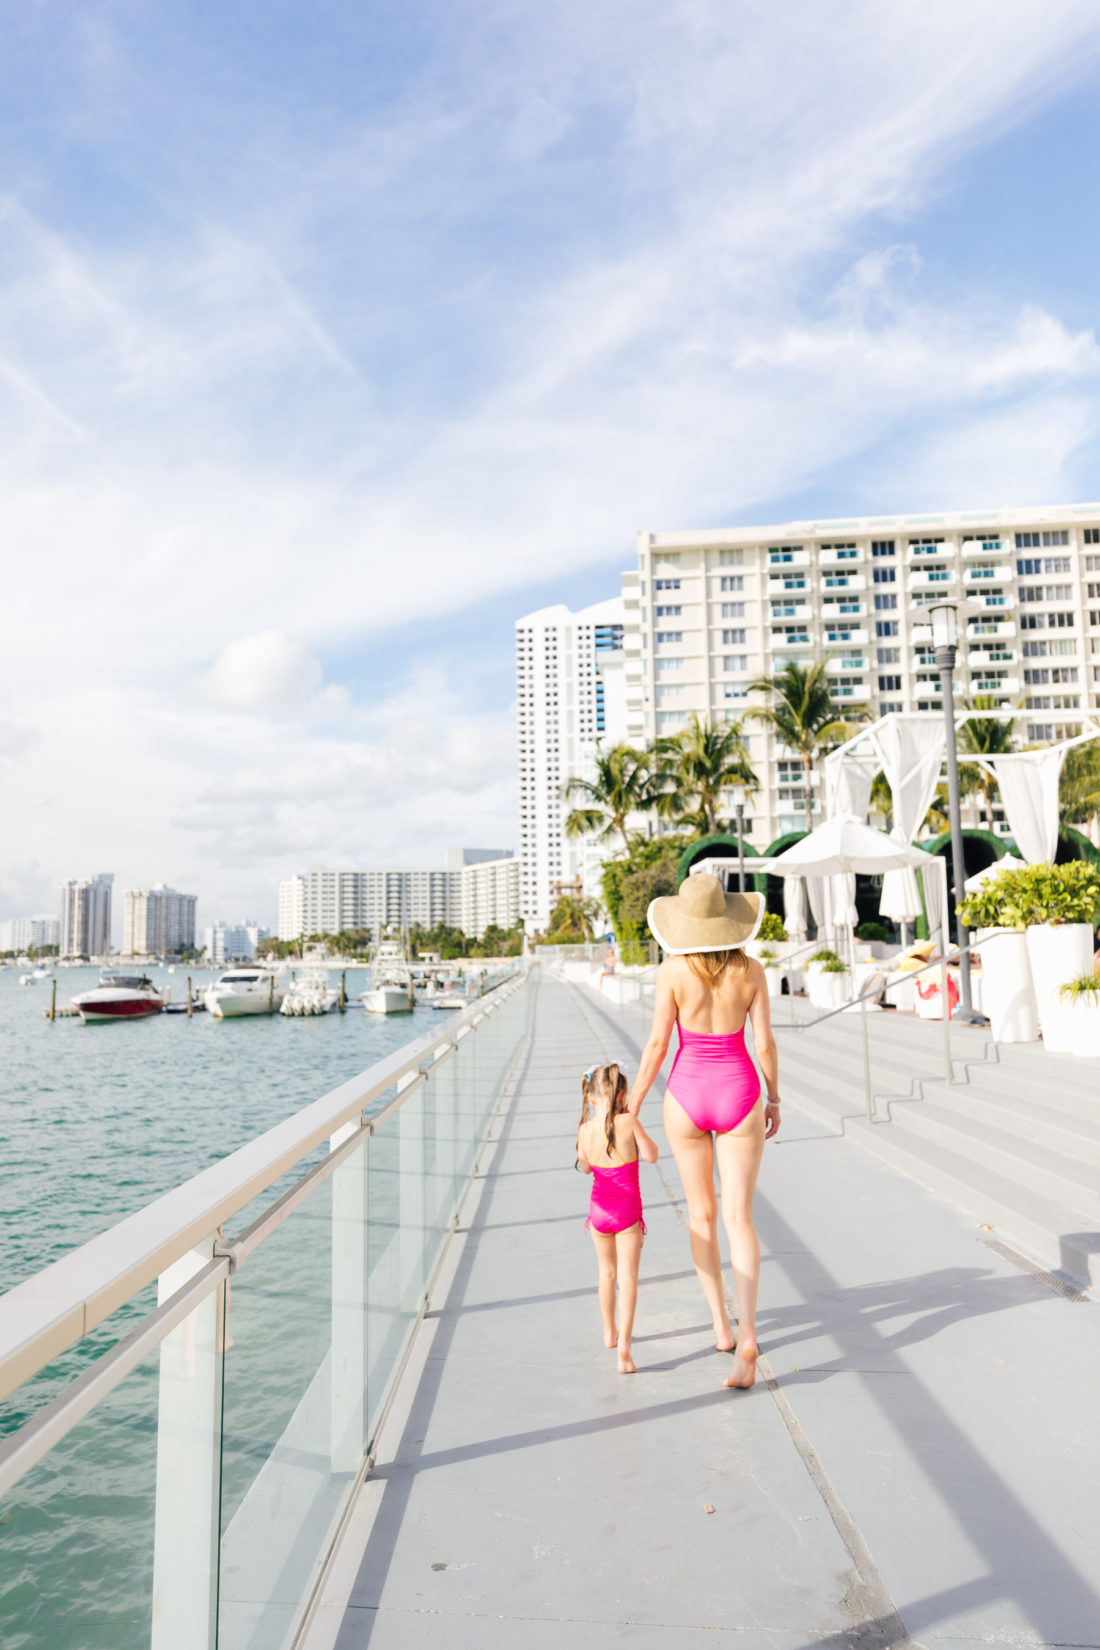 Eva Amurri Martino and Marlowe Martino walk along the edge of the water wearing matchig fuschia and gold bathing suits from the HEA x masala Baby capsule collection